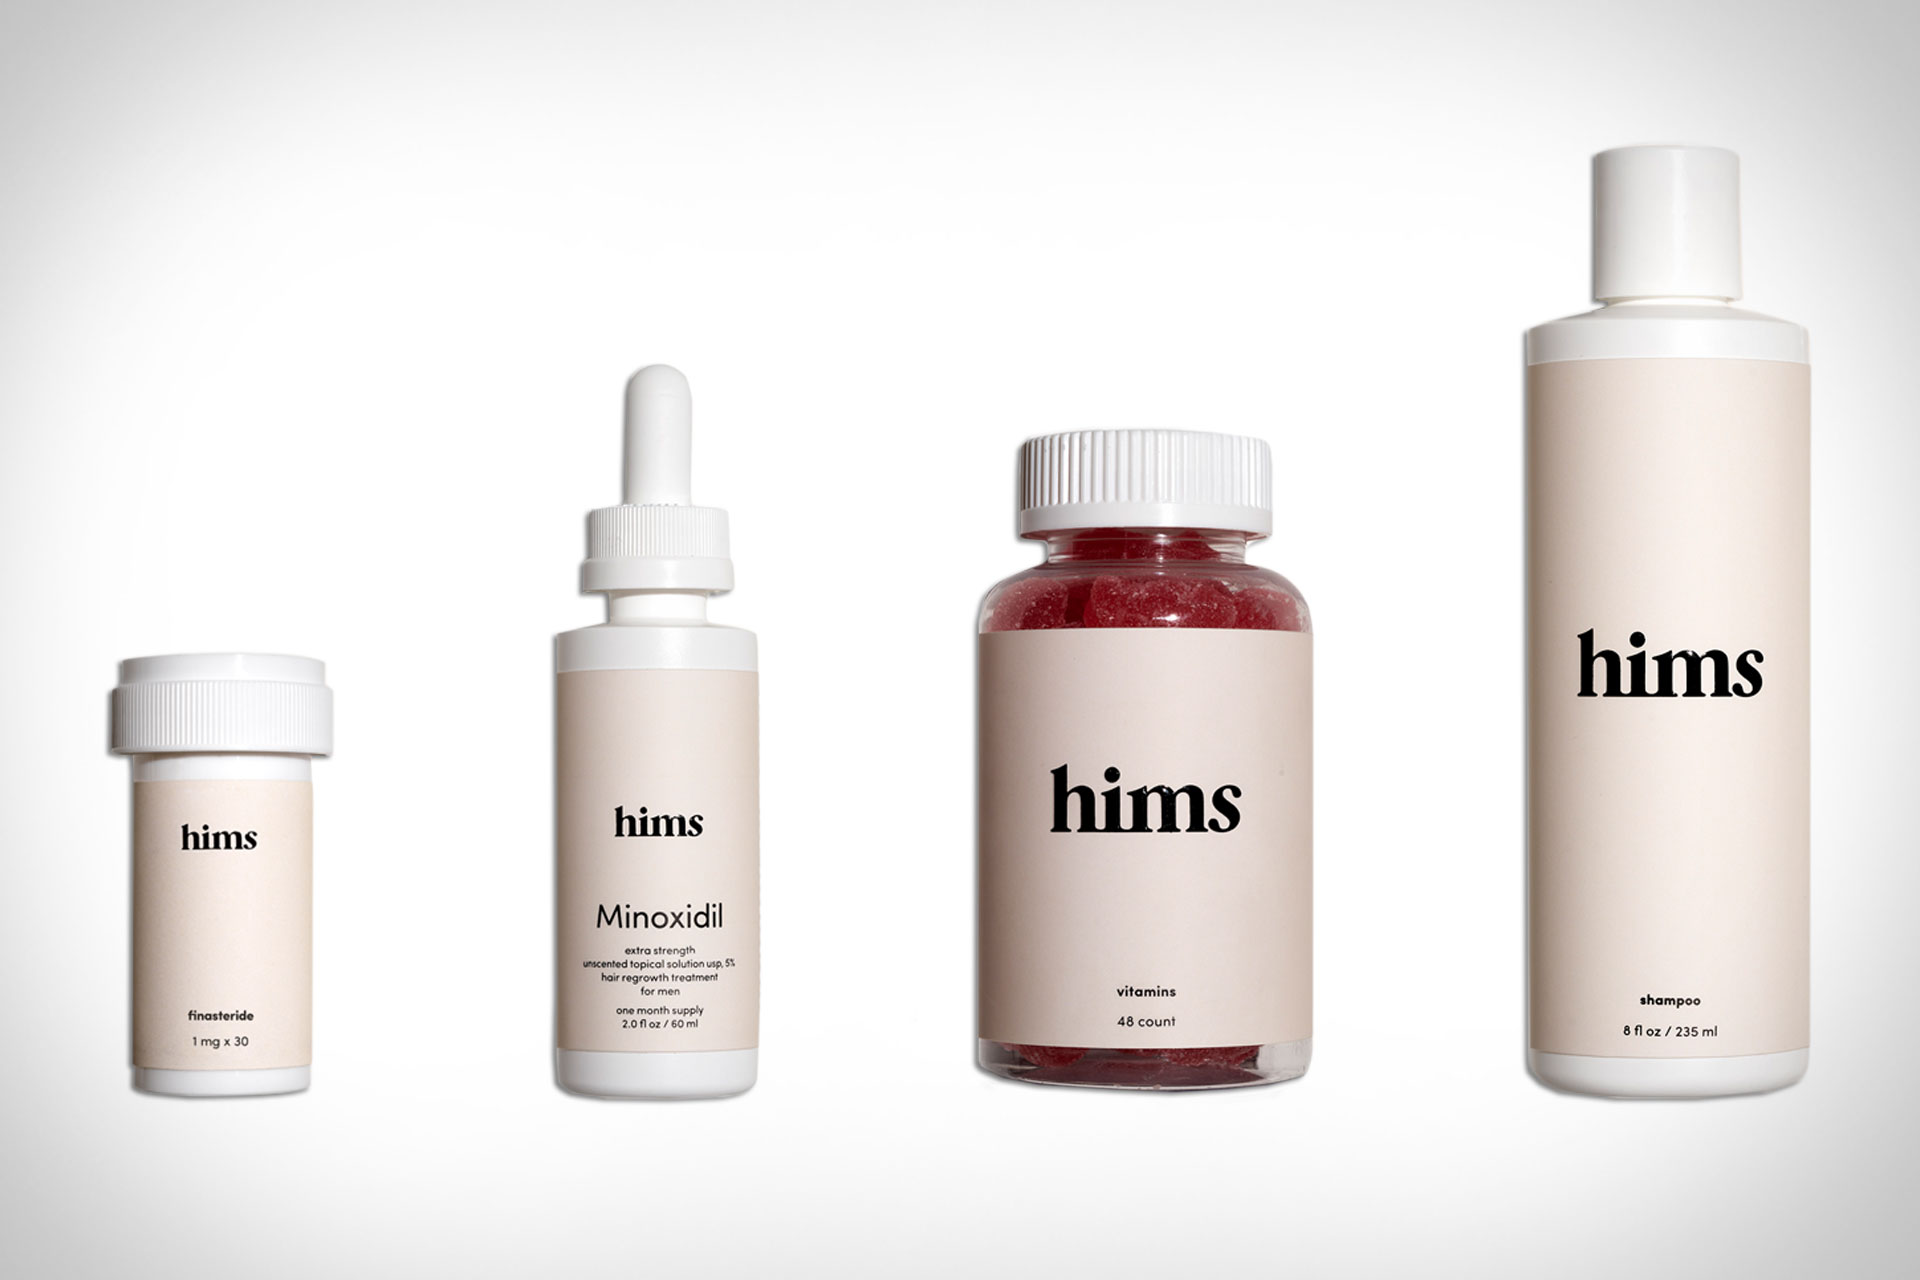 Hims Complete Hair Kit Uncrate